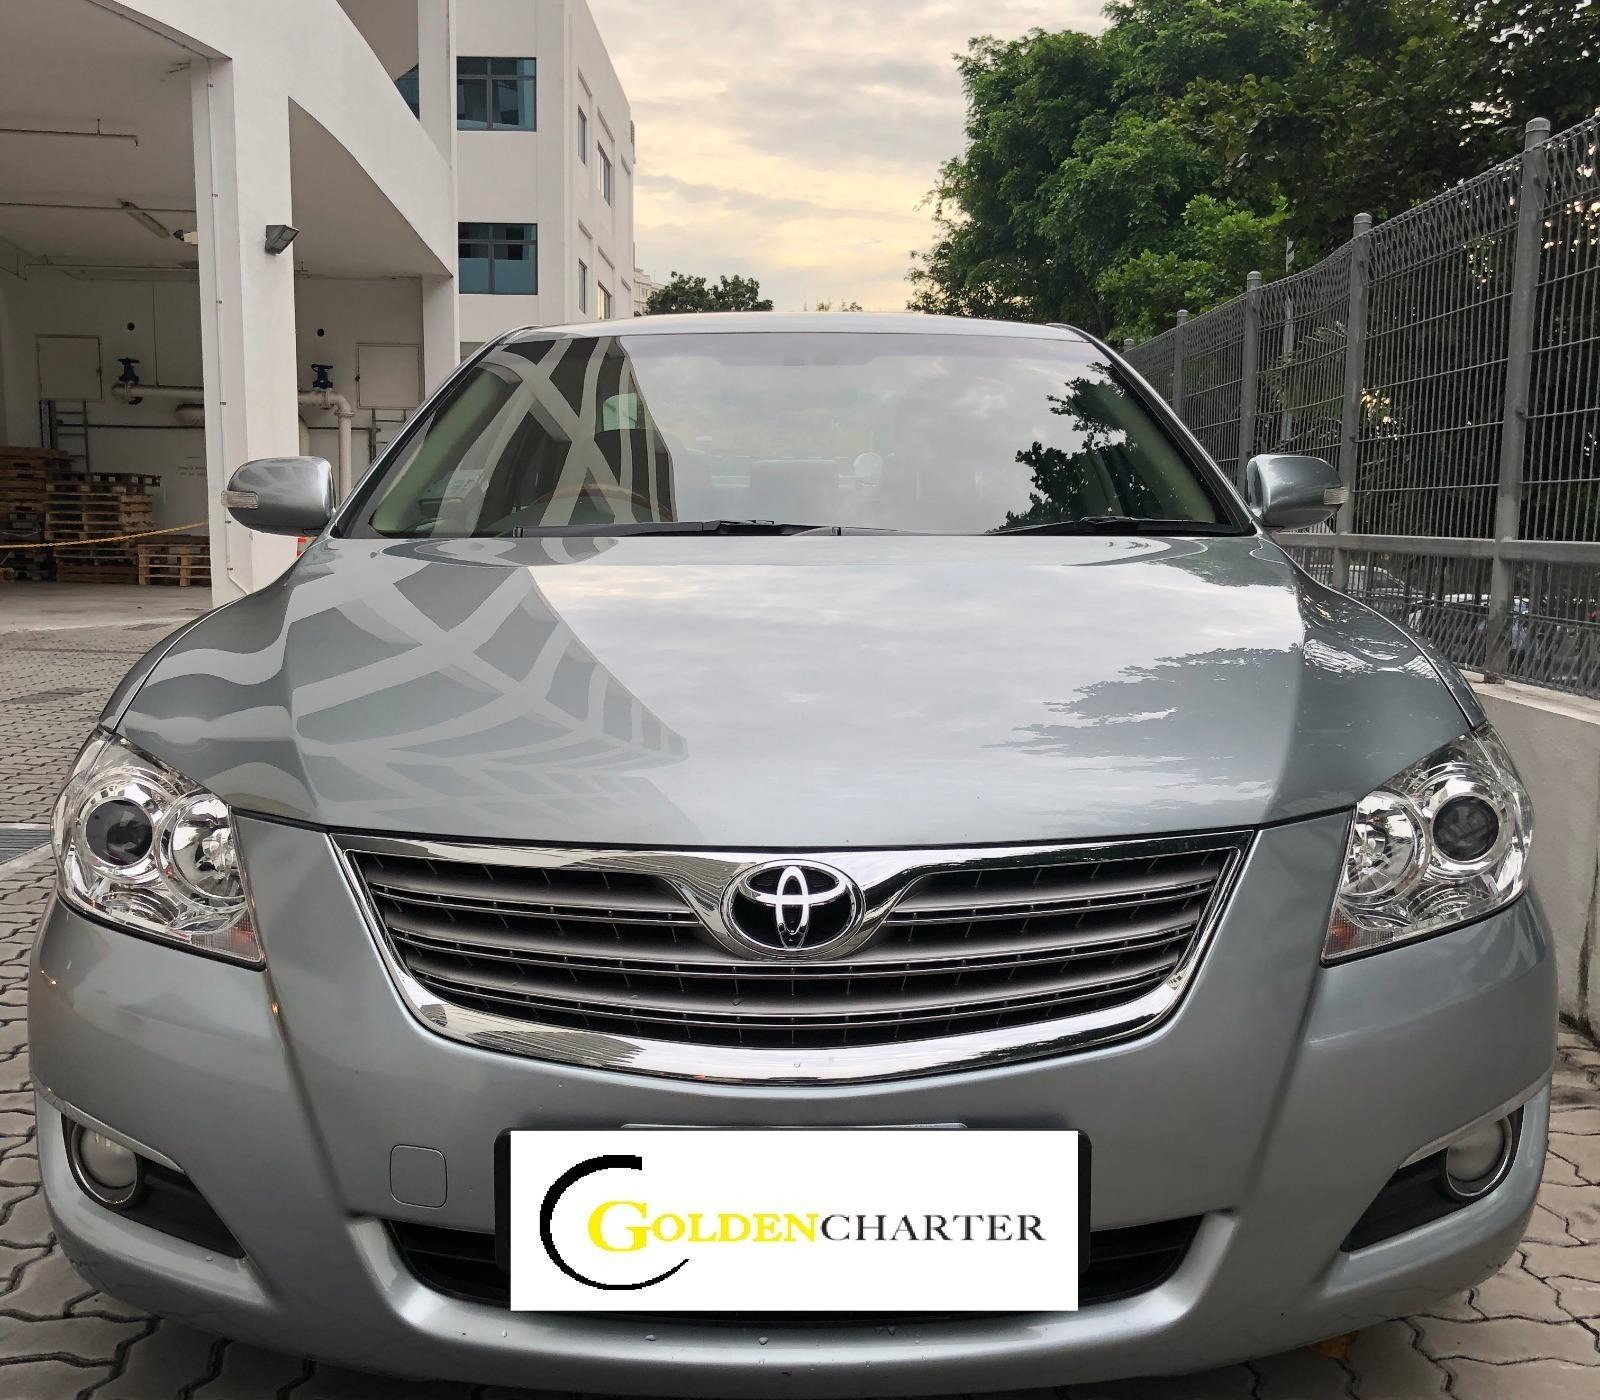 Toyota Camry $56 Toyota Vios Wish Altis Car Axio Premio Allion Camry Estima Honda Jazz Fit Stream Civic Cars Hyundai Avante Mazda 3 2 For Rent Lease To Own Grab Rental Gojek Or Personal Use Low price and Cheap Cars